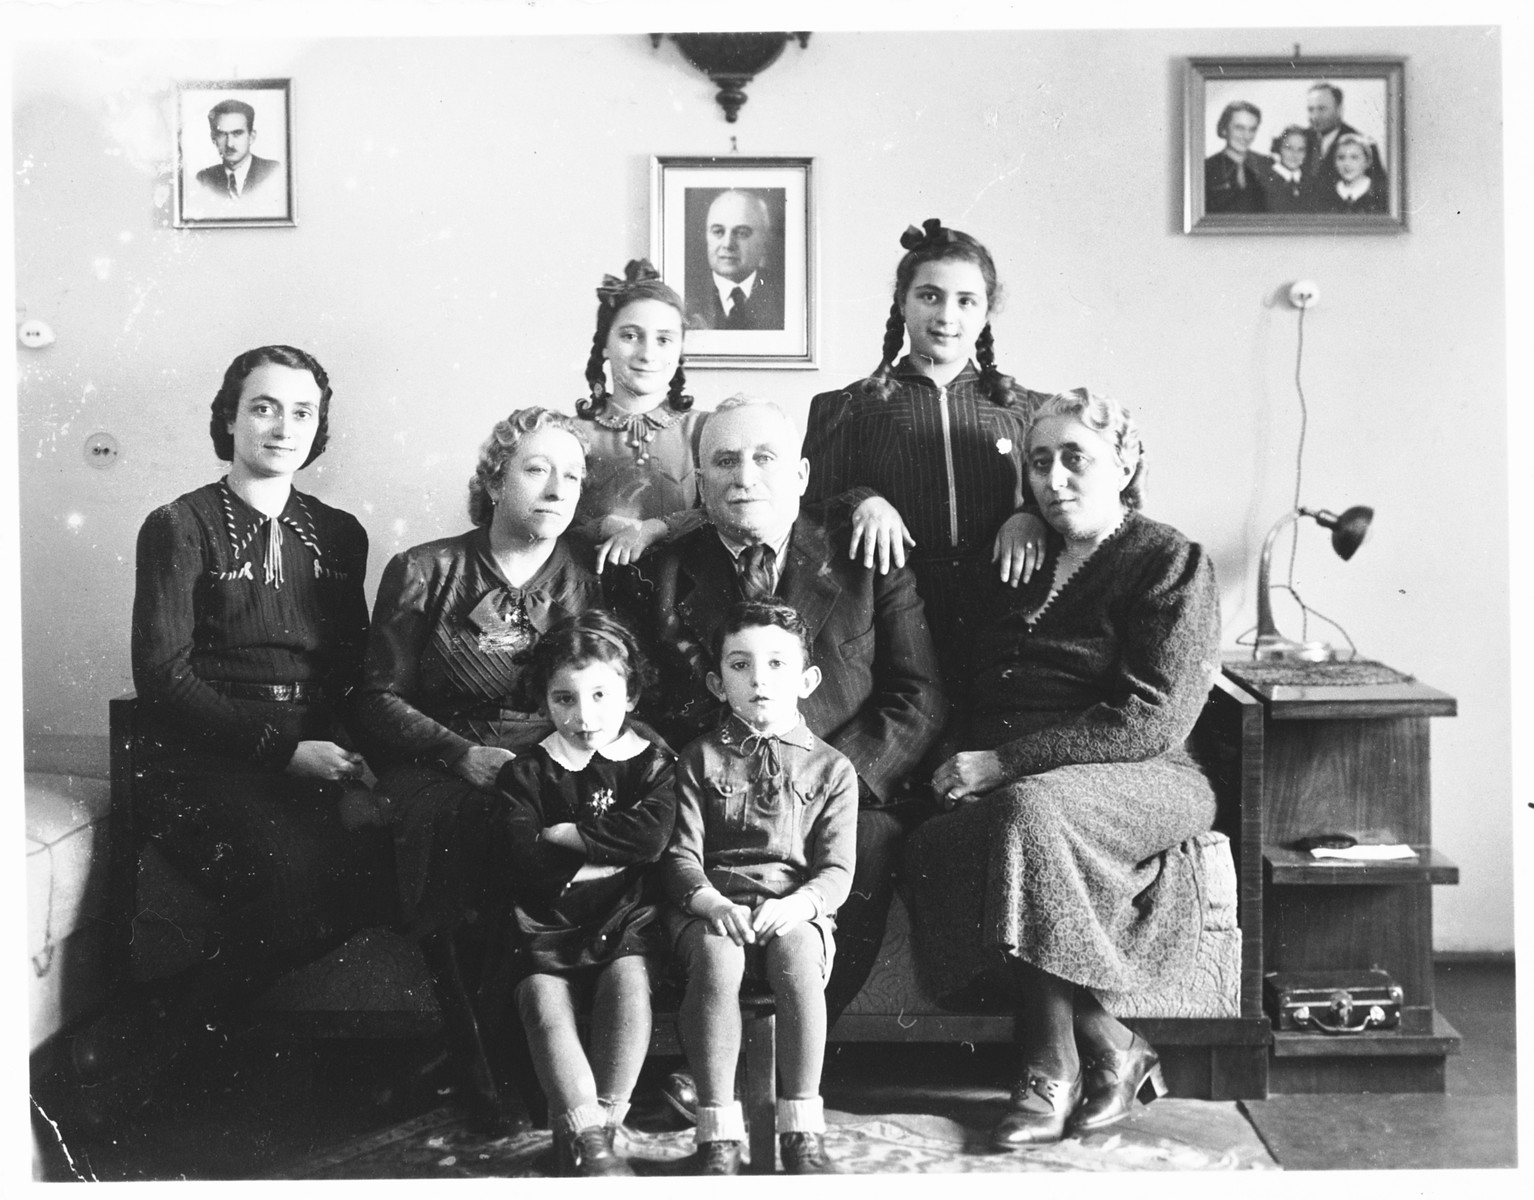 A Jewish family poses in their apartment with two young Jewish children they are taking care of, who were recently released from the Djakovo concentration camp.  Pictured are members of the Spitzer family shortly before the deportation of the Jewish community of Osijek. Standing in the back row, form left to right are Leah and Miriam Spitzer; in the middle row are Ilonka Spitzer, Riza Krasso and Mr. and Mrs. Spitzer, the parents of Marko Spitzer.  At the time of this photograph, Marko Spitzer was already in a POW camp, and Alfred Krasso was imprisoned in Jasenovac.